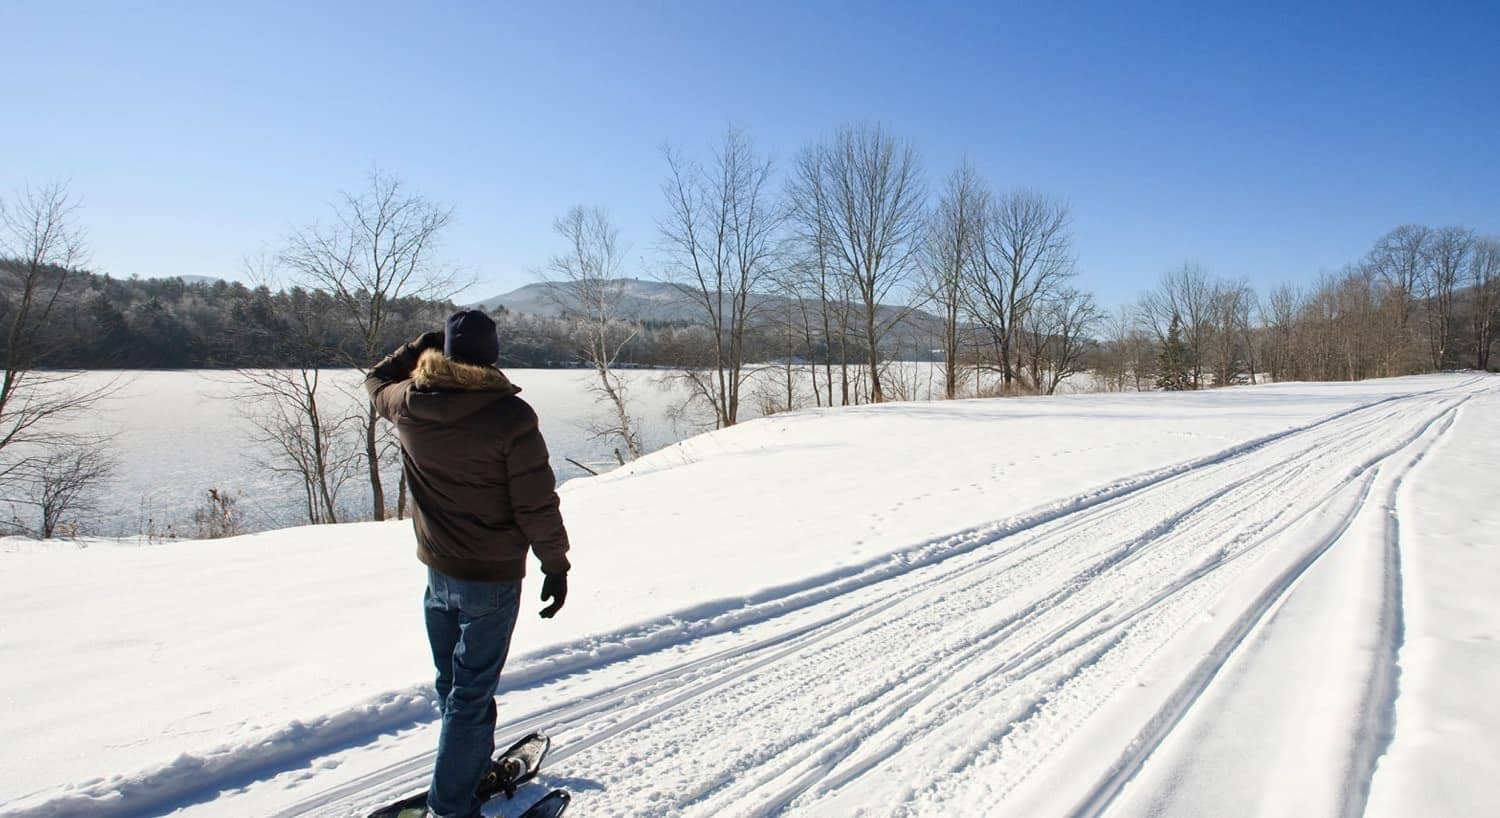 Man wearing cross-country skis on a snowy lane overlooking miles of snow-covered hilly terrain and blue skies